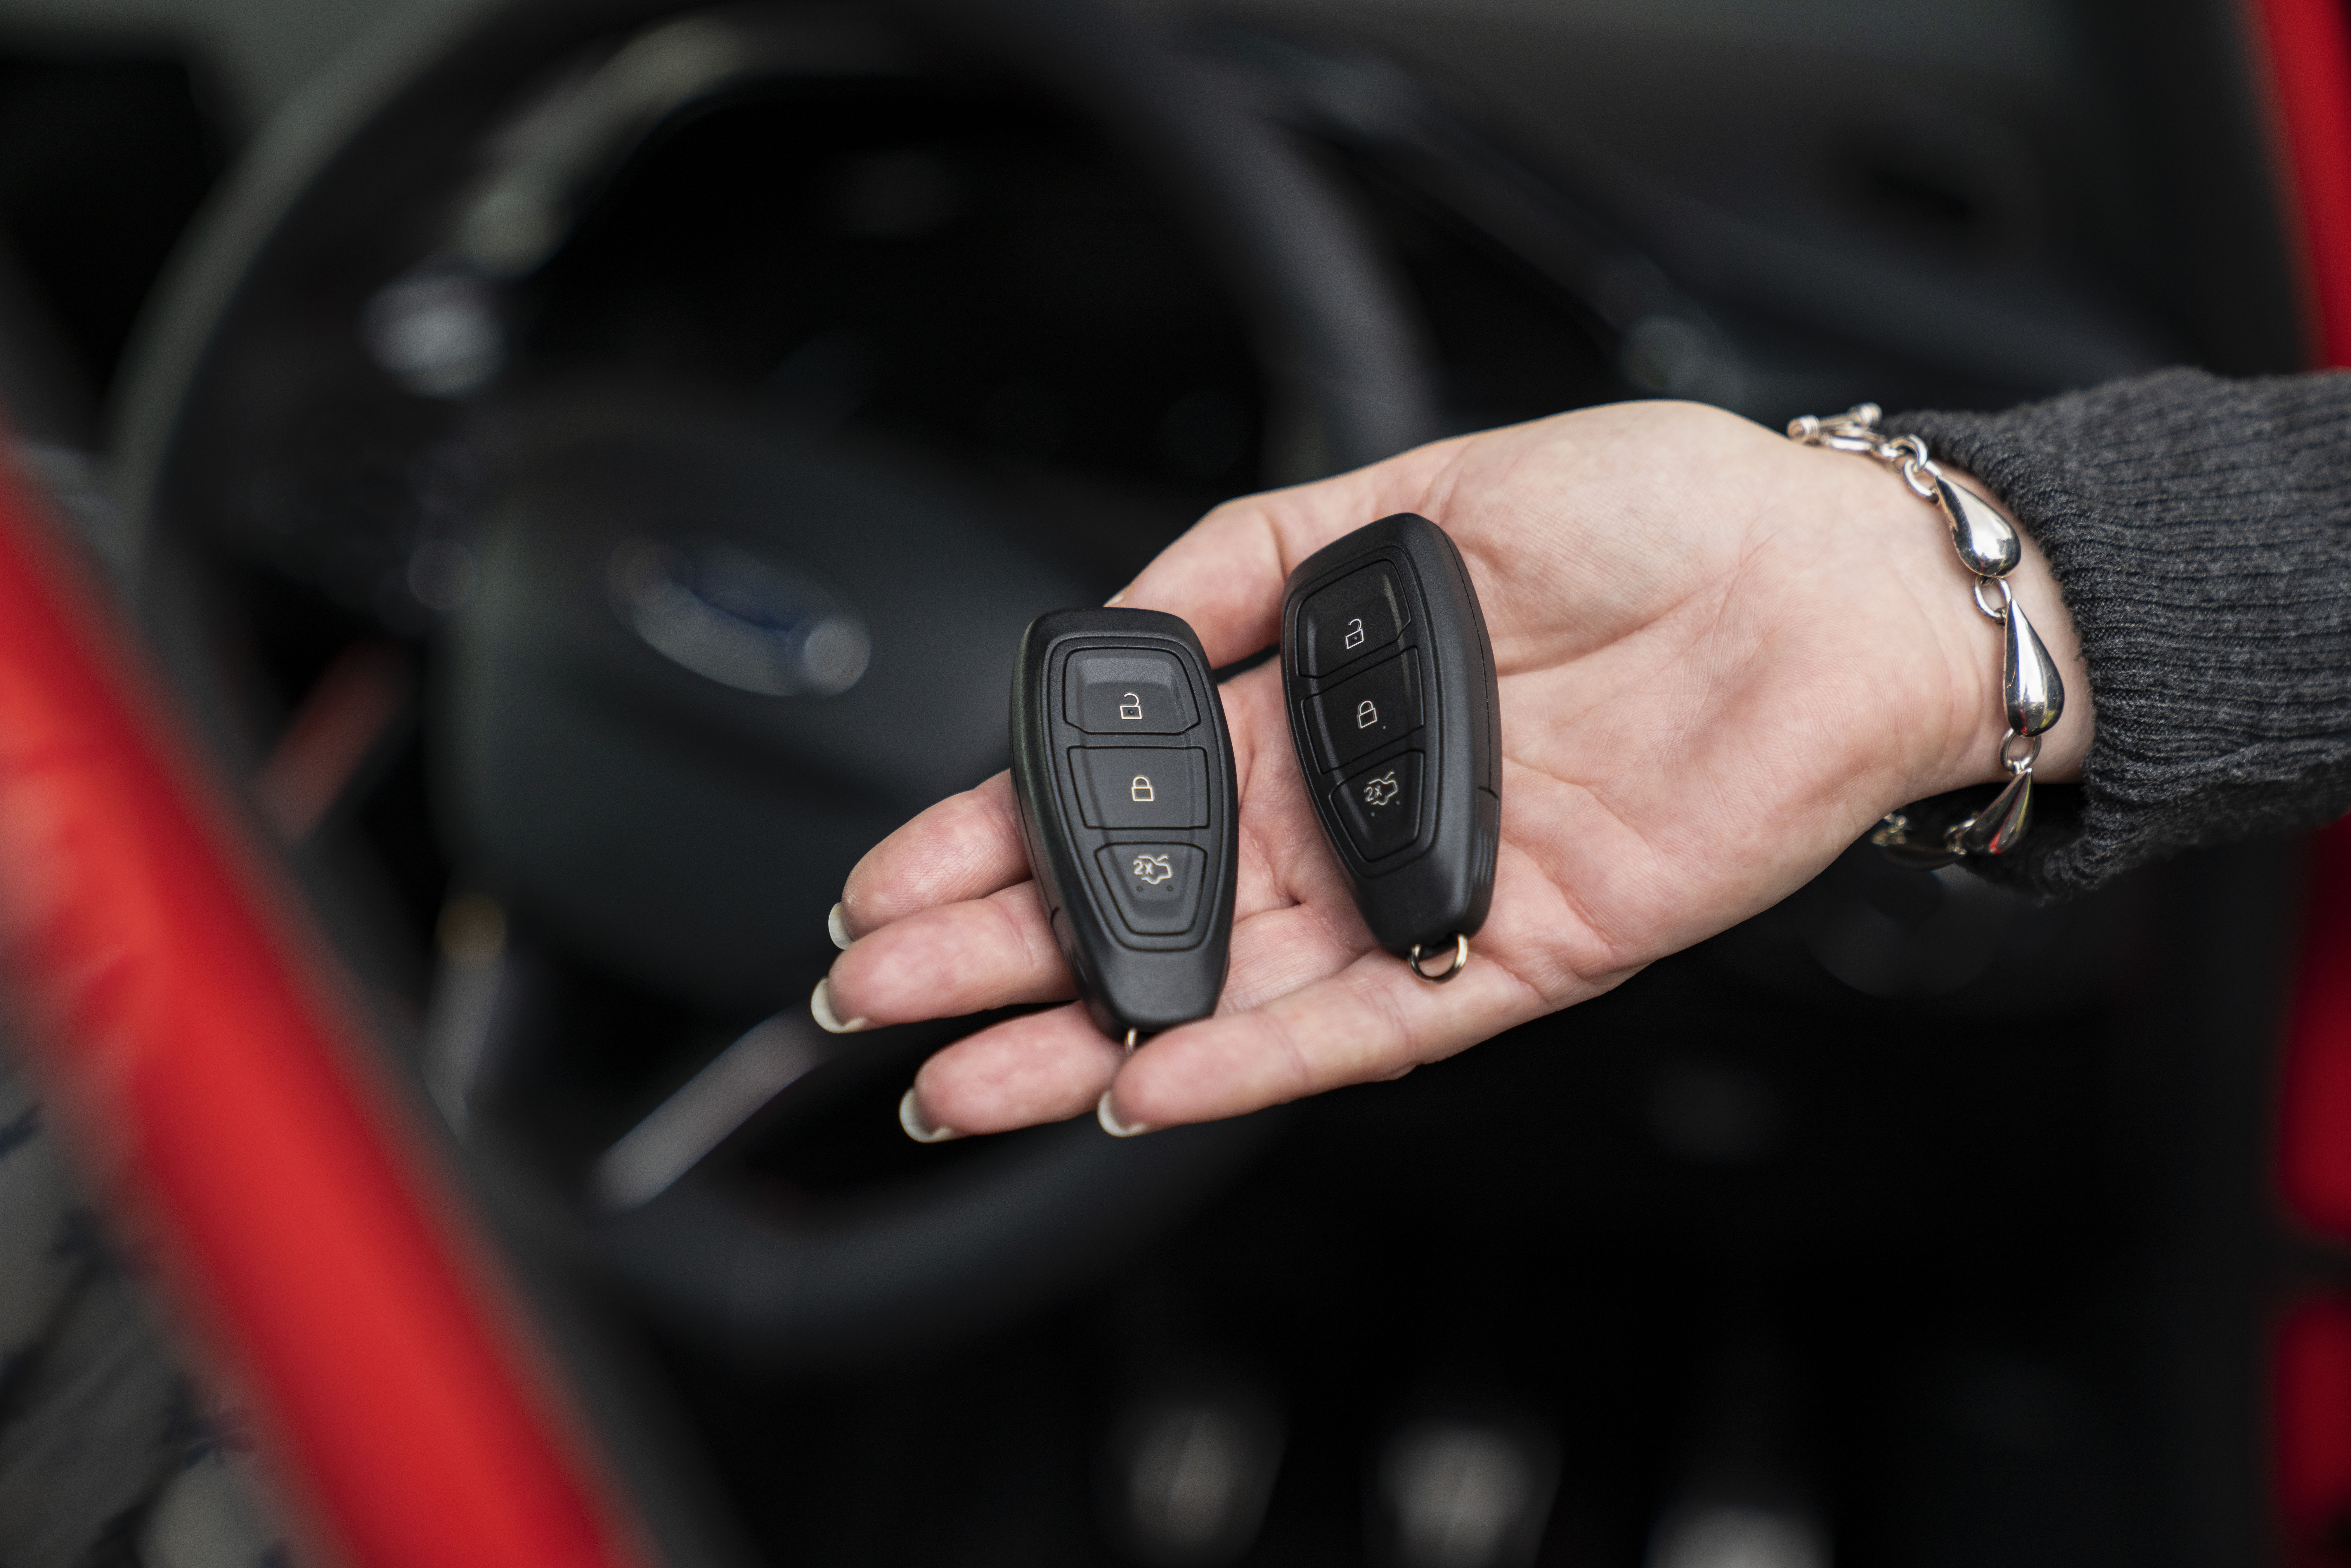 Tesla Model S Key Fob Functions